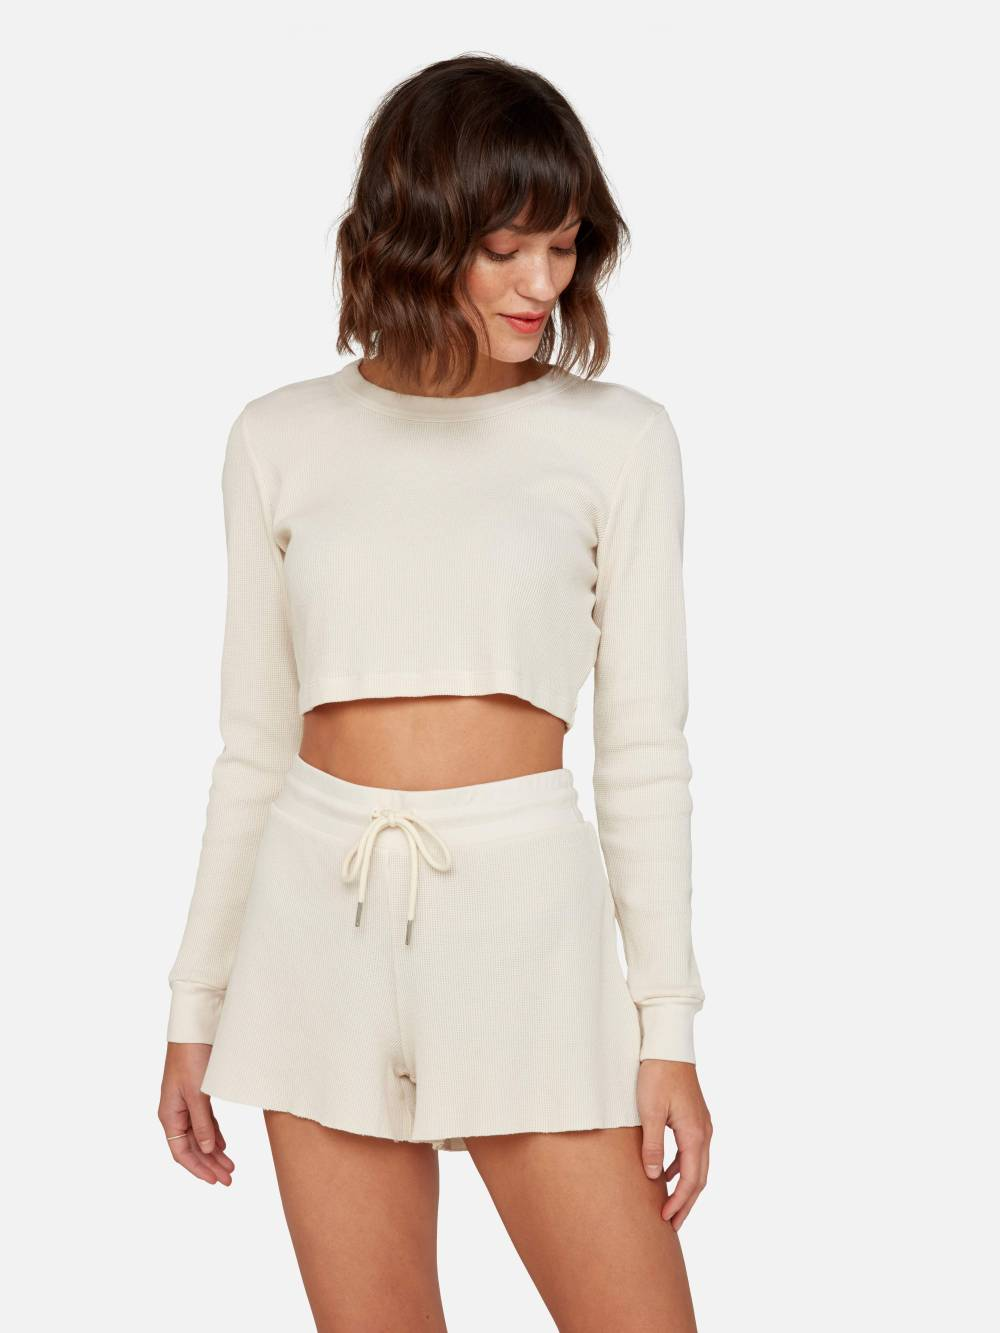 mate petite hourglass outfit shorts